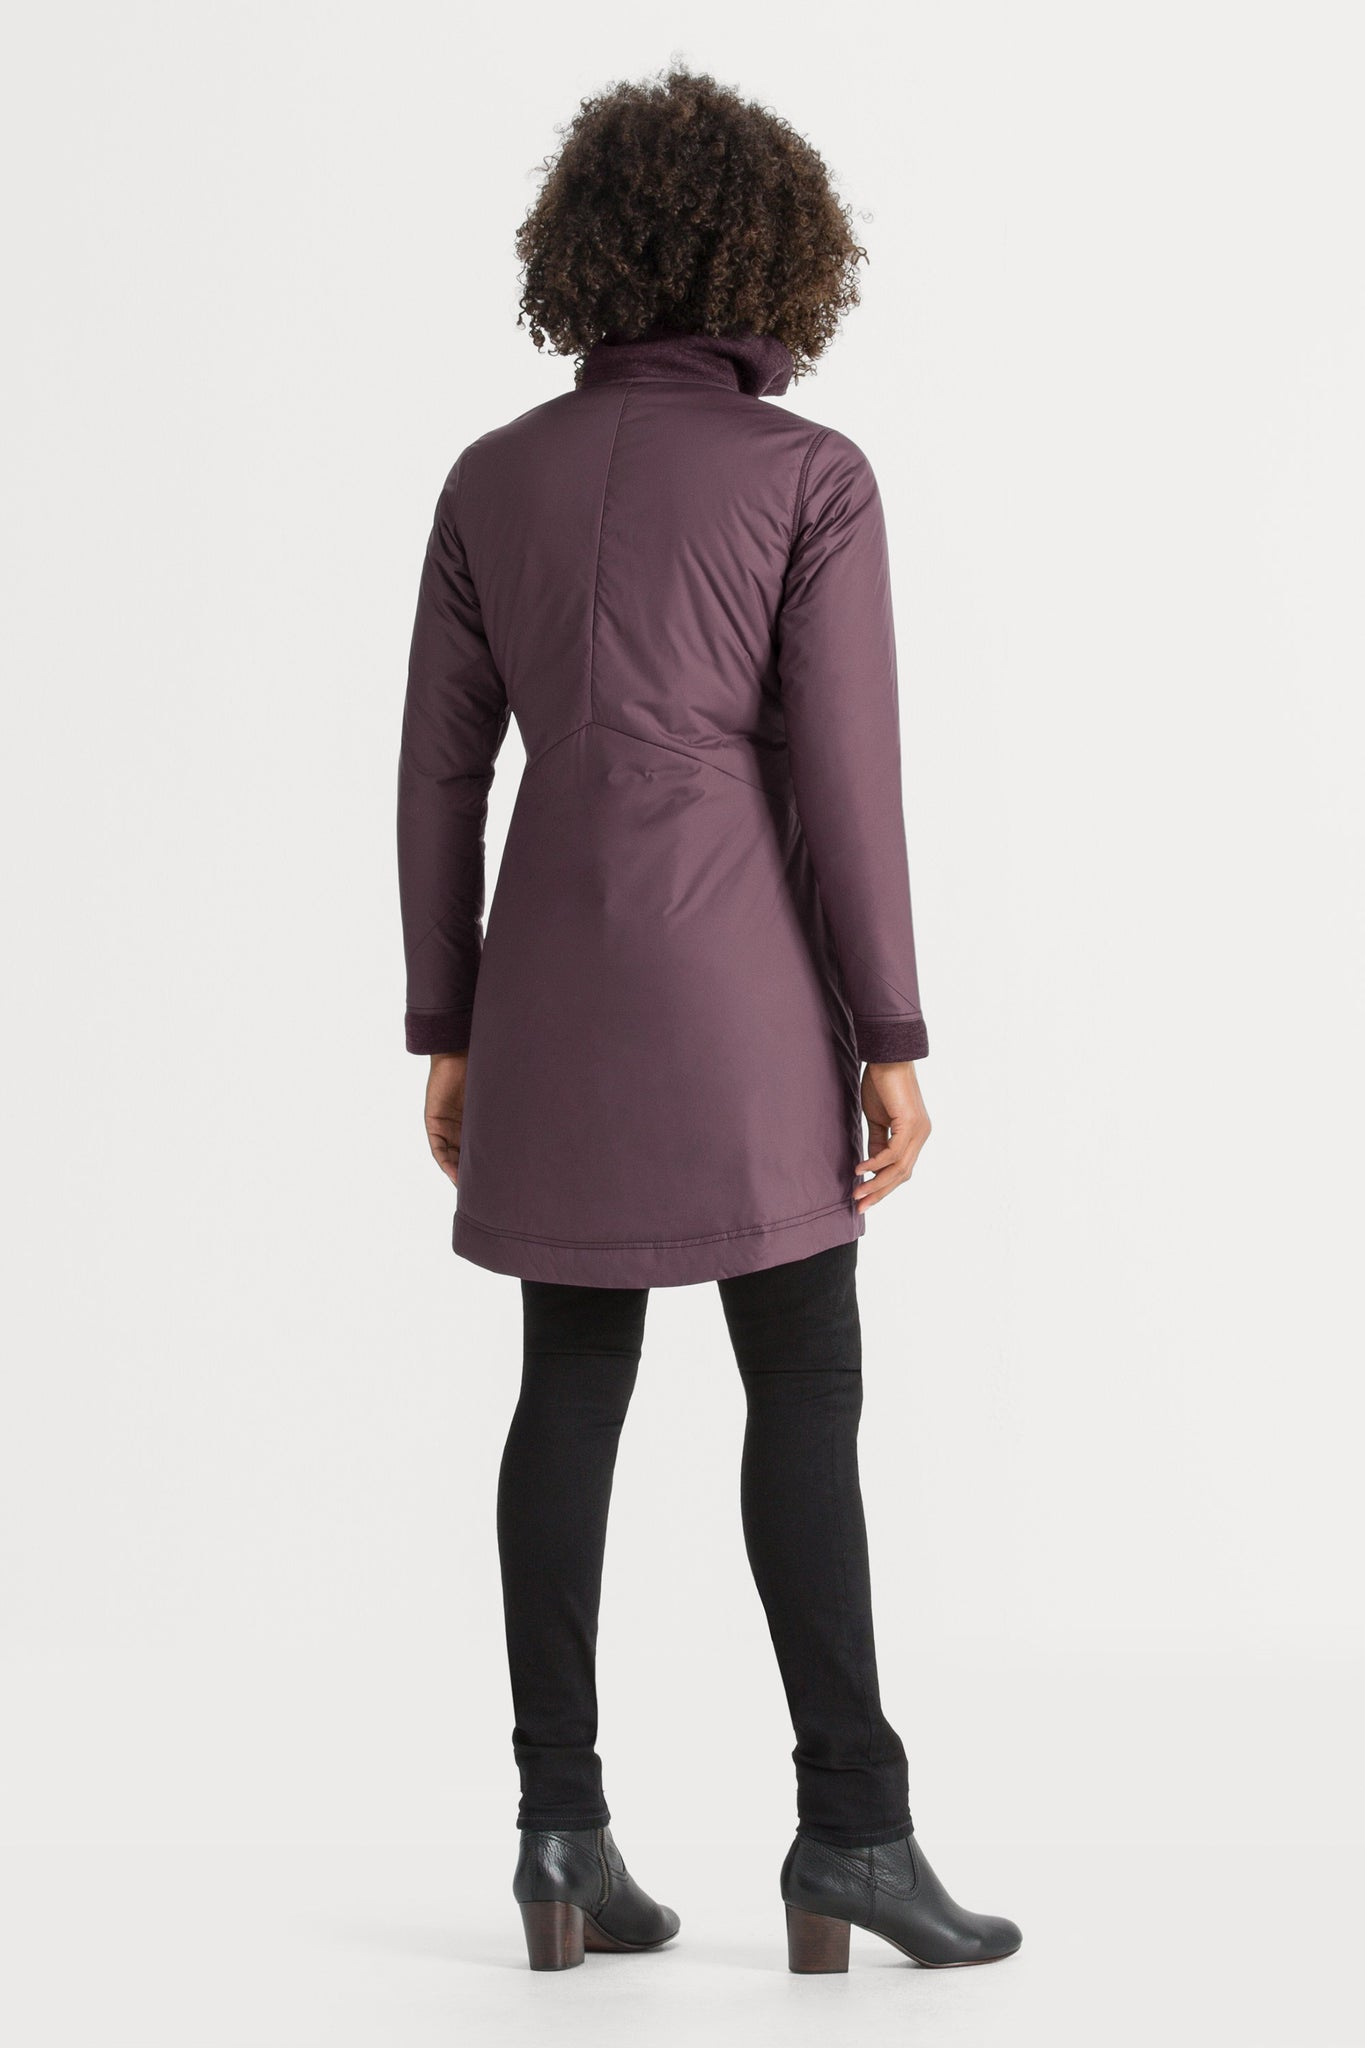 Women's Asym Lite Lightweight Insulated Trench Coat - Plum